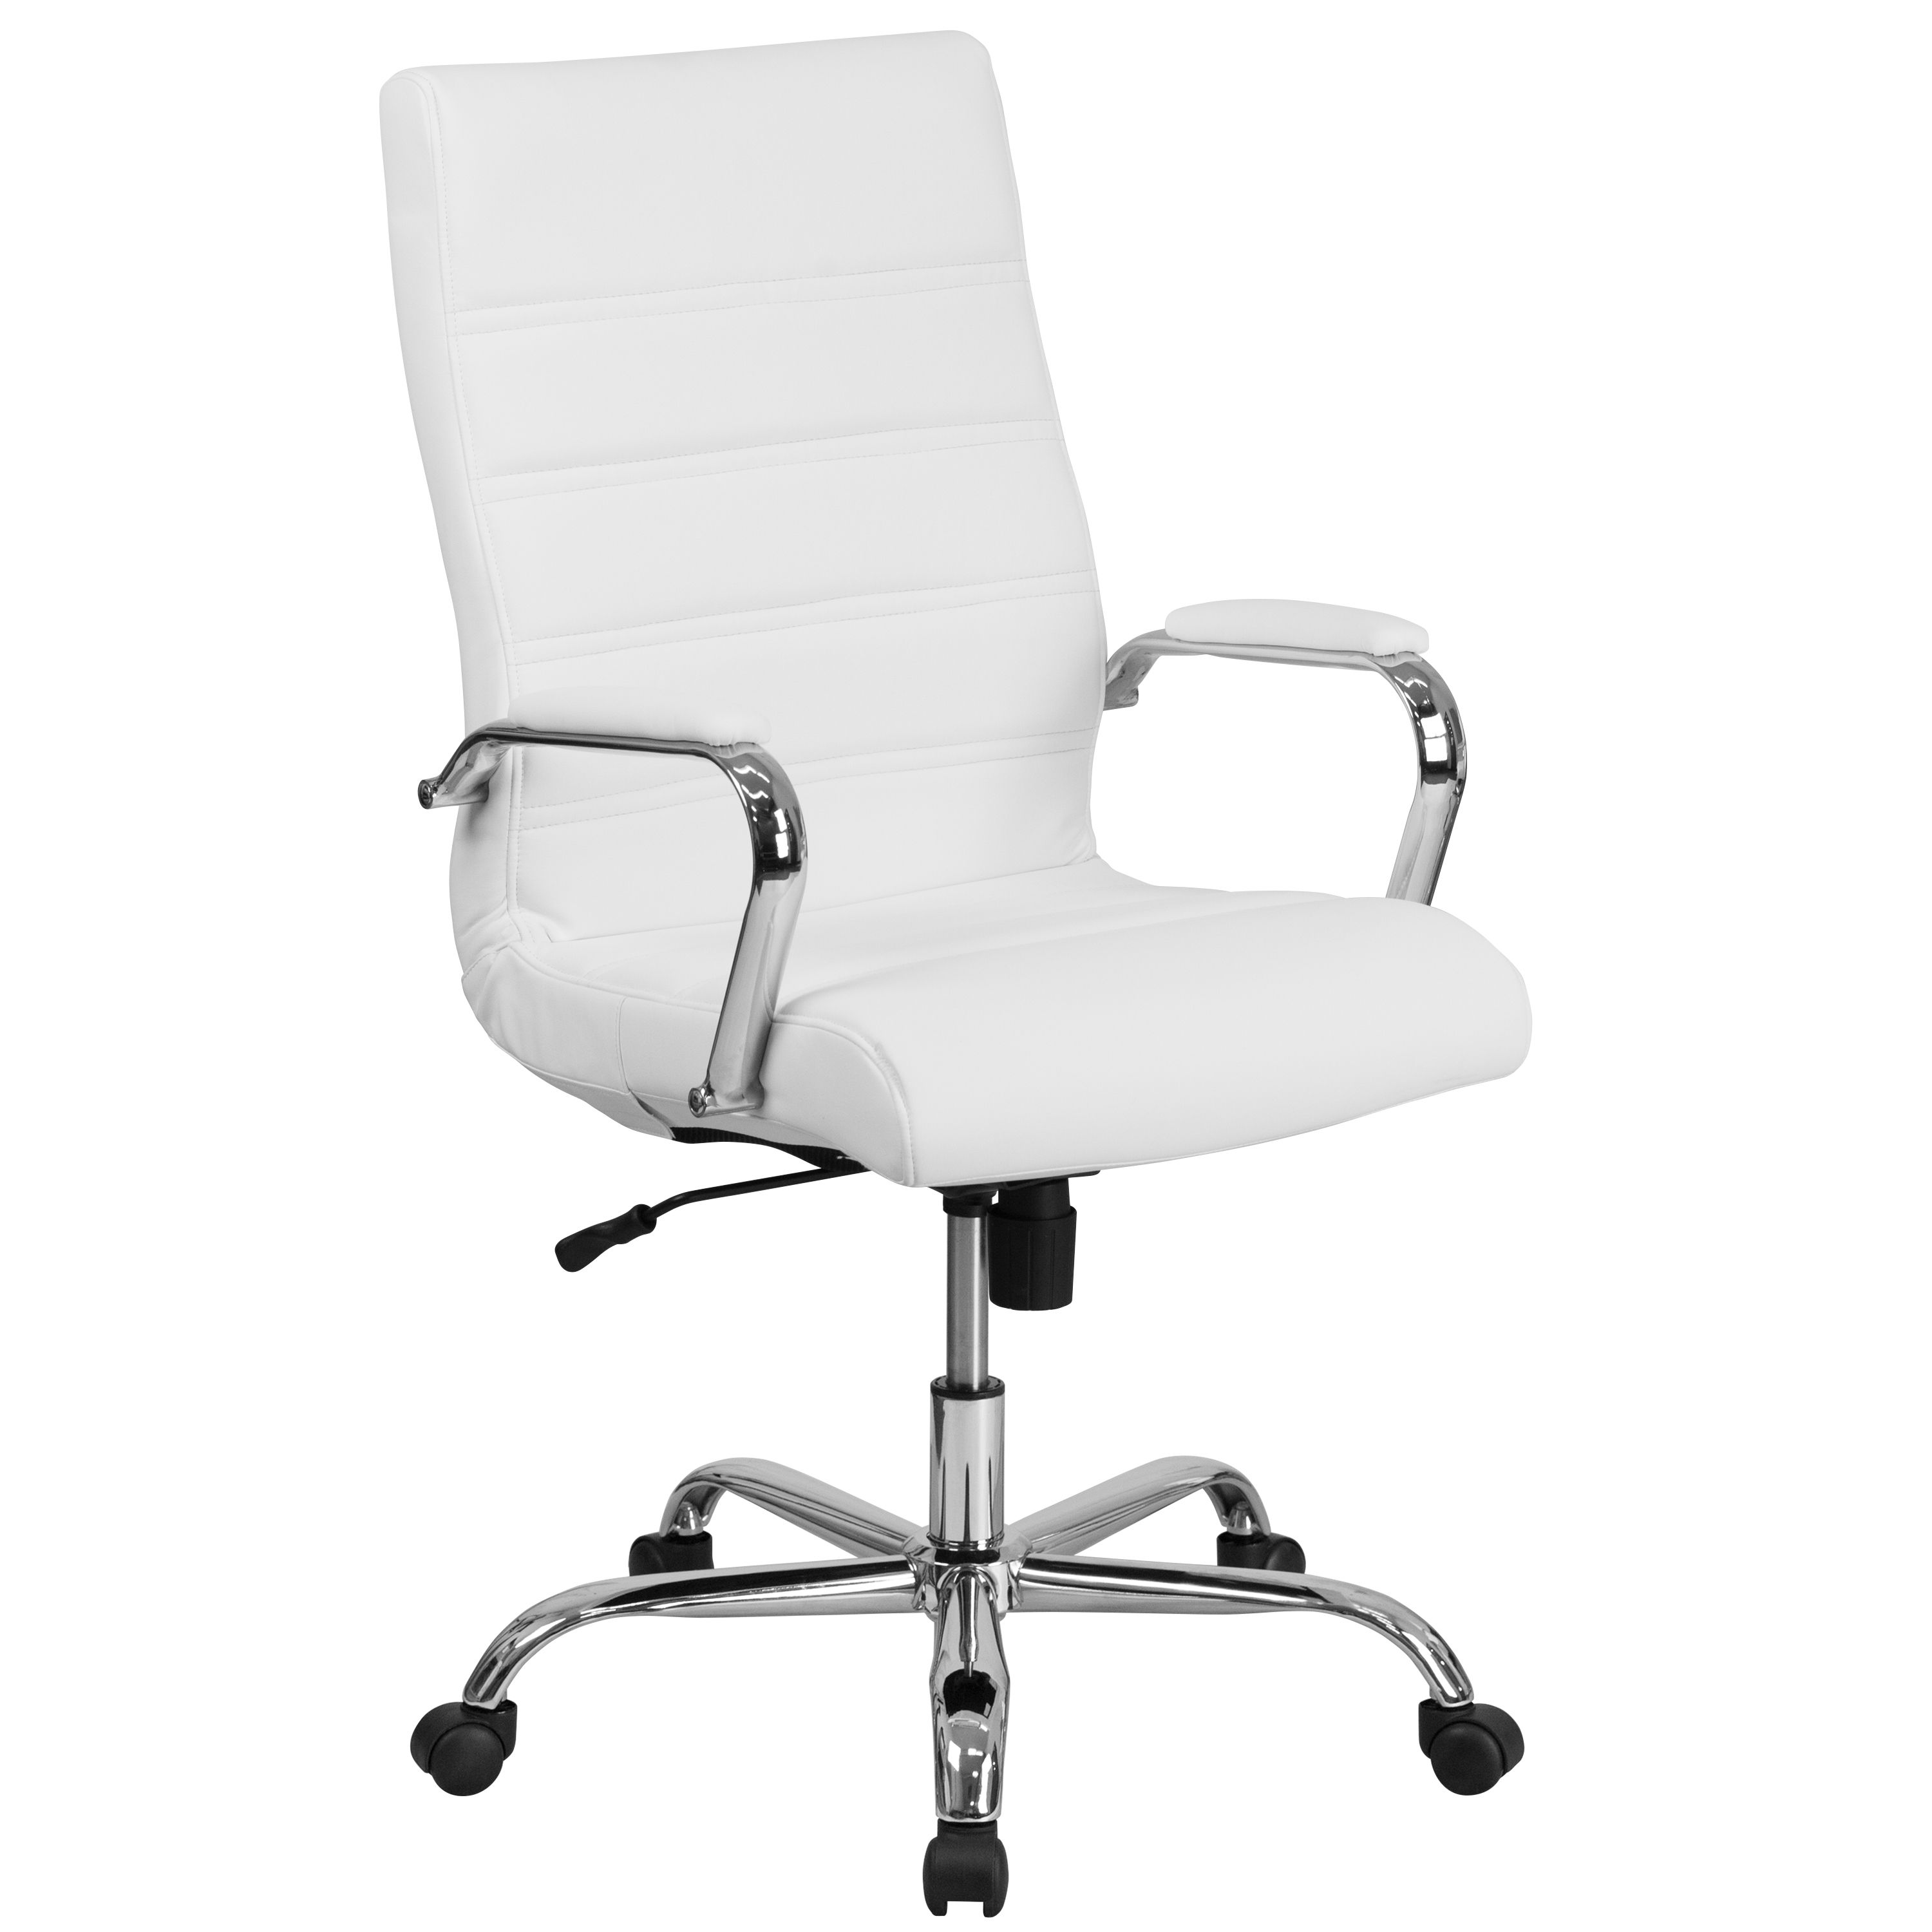 Free 2 Day Shipping Buy Flash Furniture High Back White Leather Executive Swivel Office Chair With Chr Swivel Office Chair Office Chair Ergonomic Office Chair